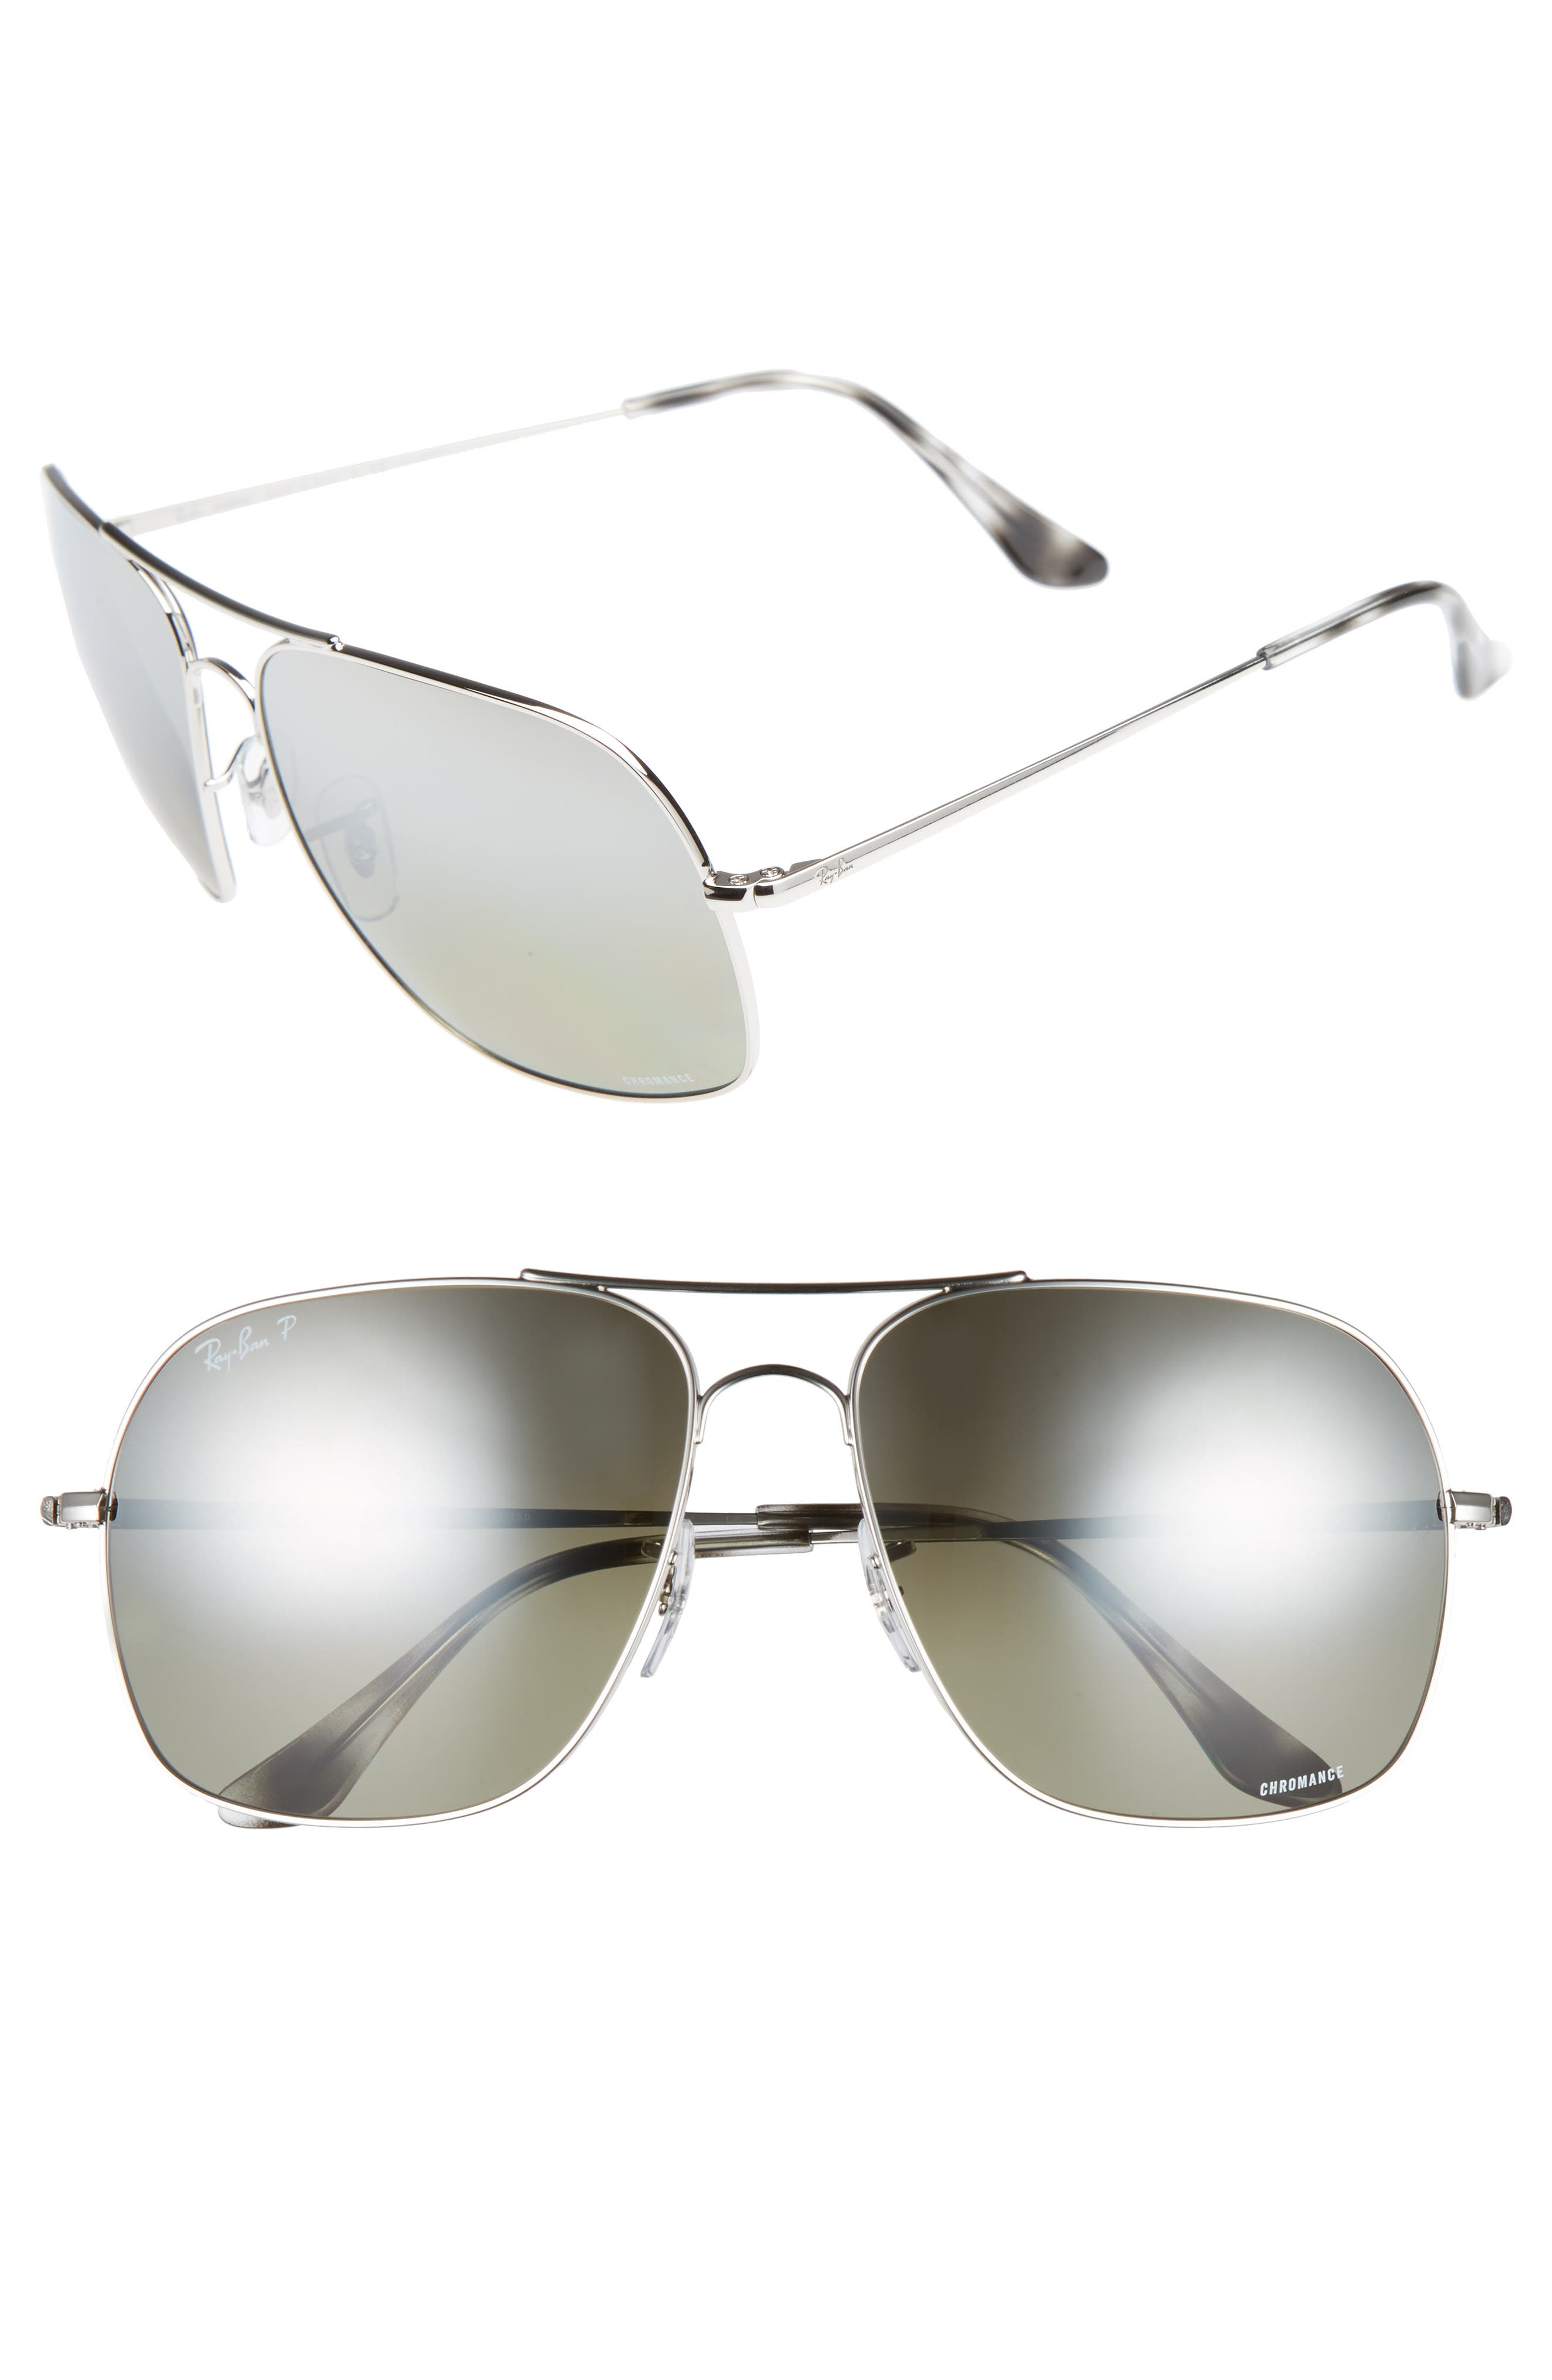 61mm Mirrored Lens Polarized Aviator Sunglasses,                             Main thumbnail 1, color,                             Silver